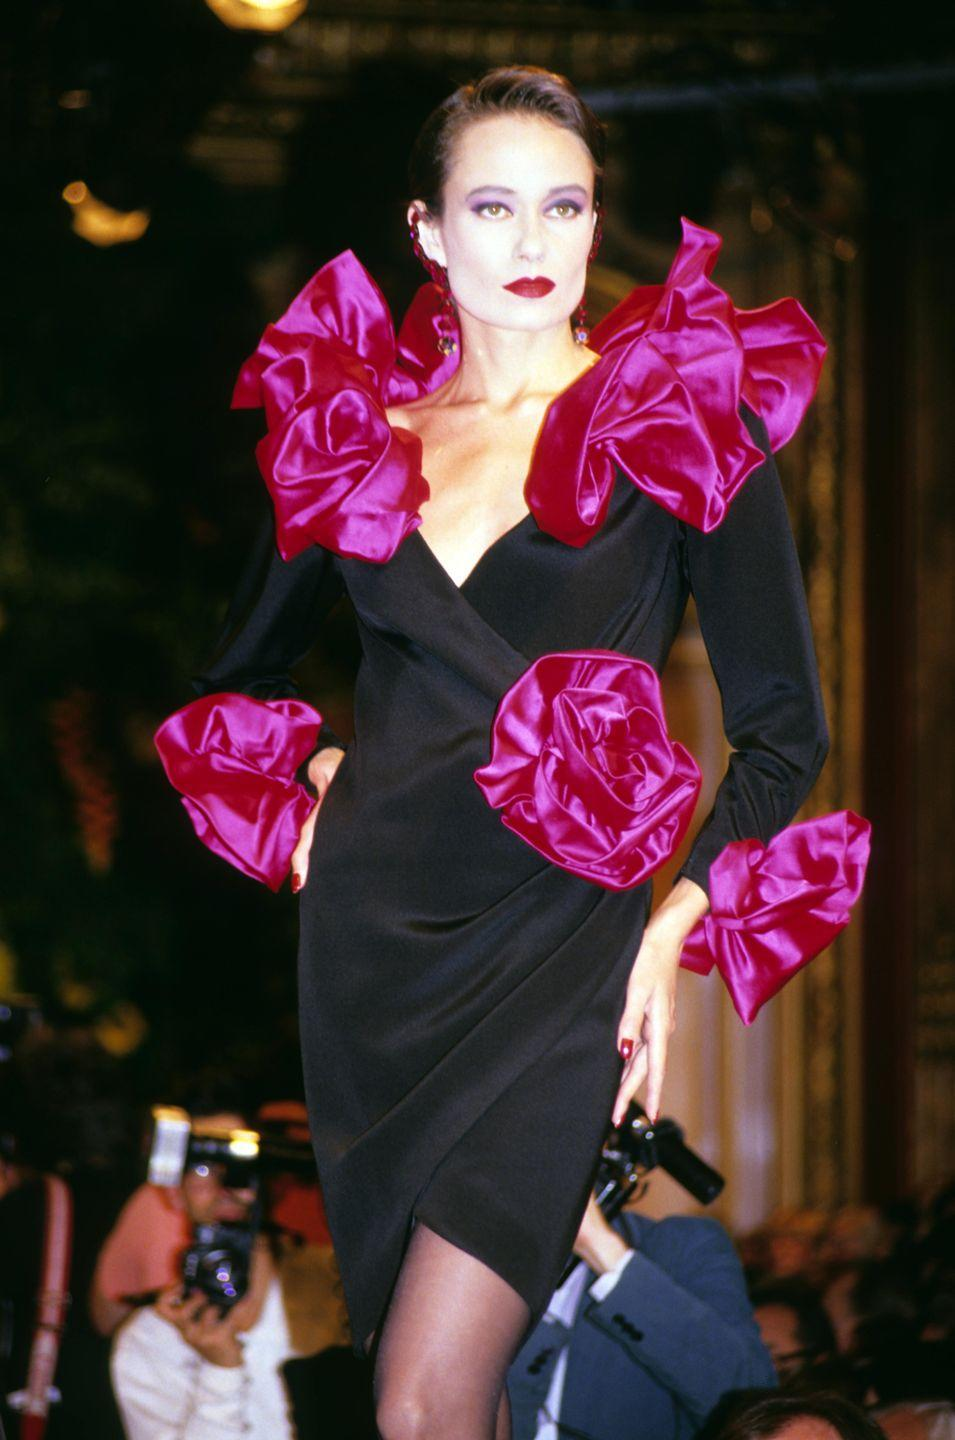 <p>A model in a little black dress complete with pink pouf detailing at Yves Saint Laurent's runway show during Paris Fashion Week.</p>